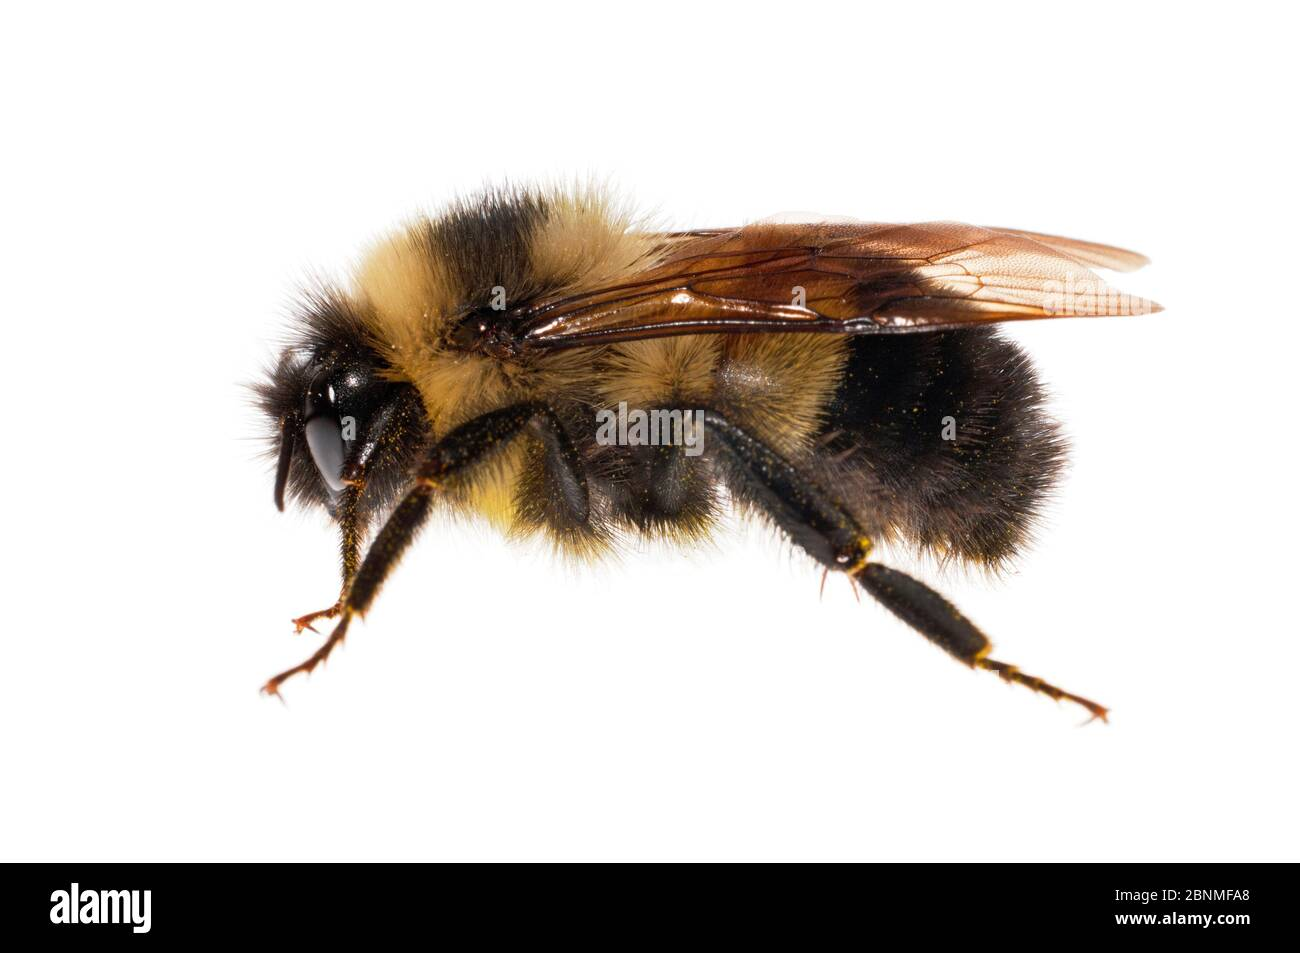 Rusty patched bumblebee (Bombus affinis), female, worker, Madison, Wisconsin, USA. Meetyourneighbours.net project Stock Photo